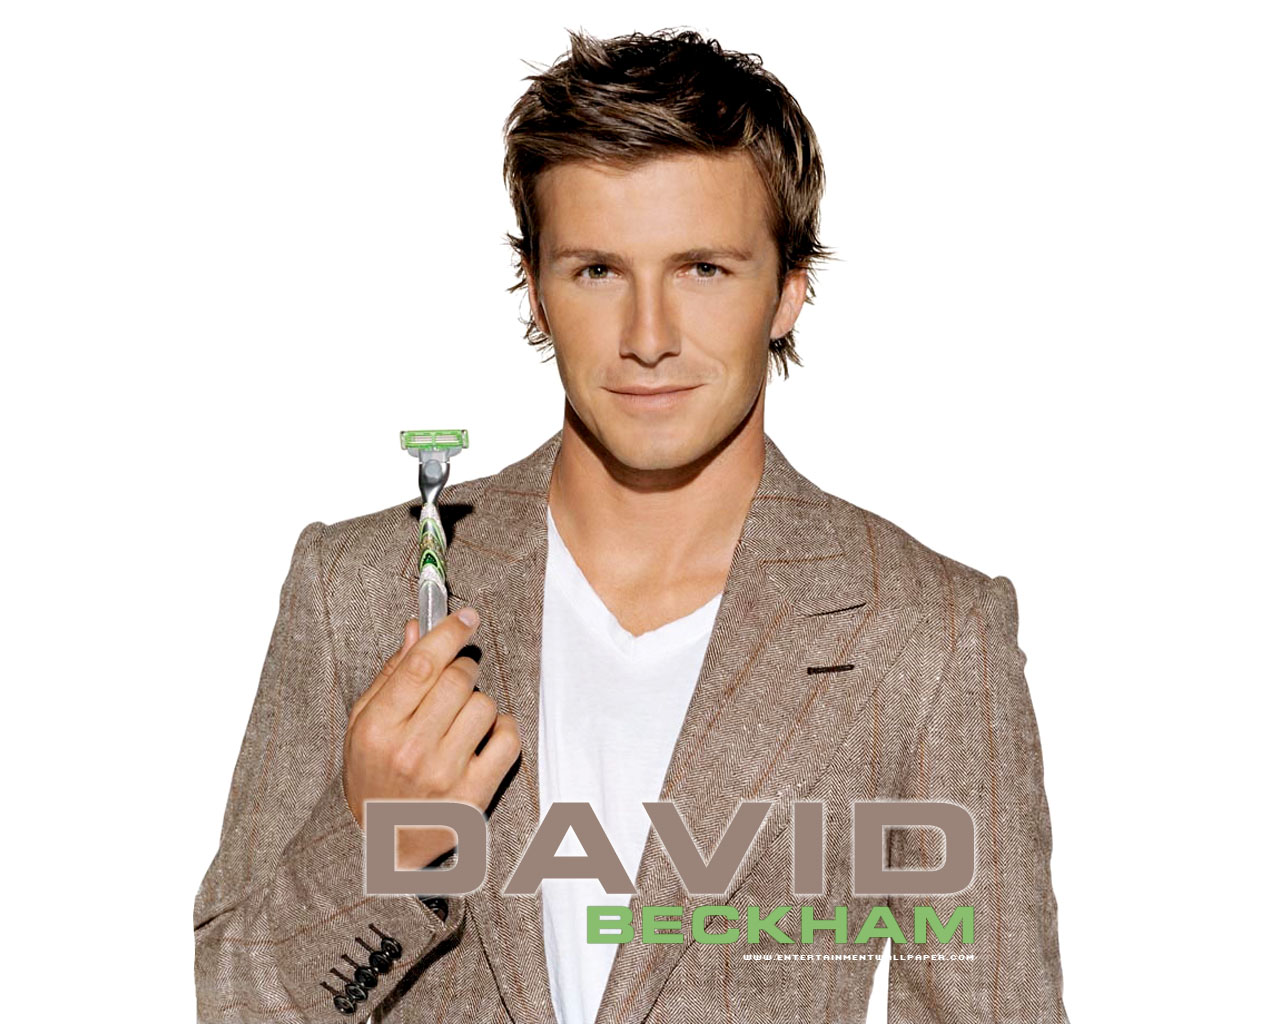 Groovy File Name David Beckham Hairstyle Wallpapers Prom Hairstyle Hairstyles For Women Draintrainus